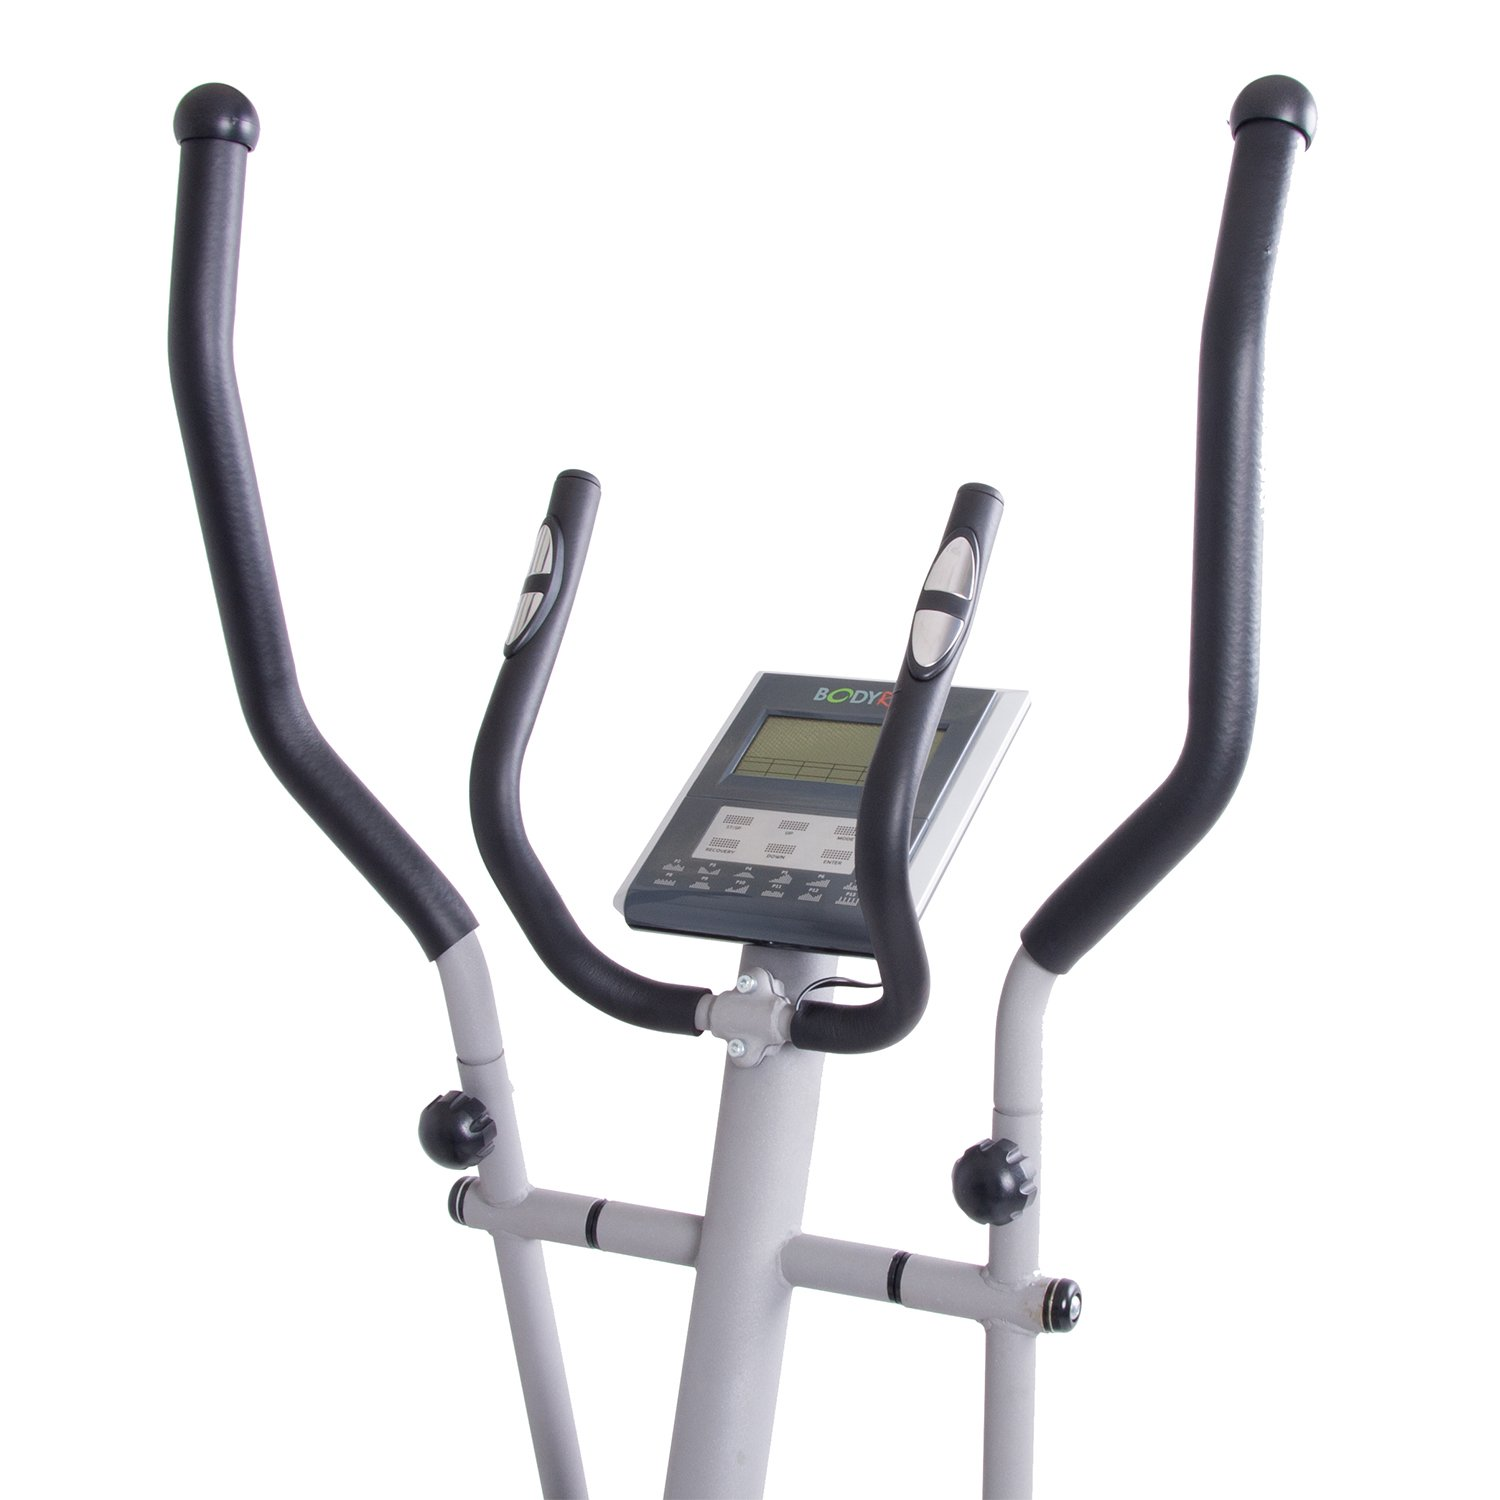 What Are Some Tips For Finding Eclipse Elliptical Trainer